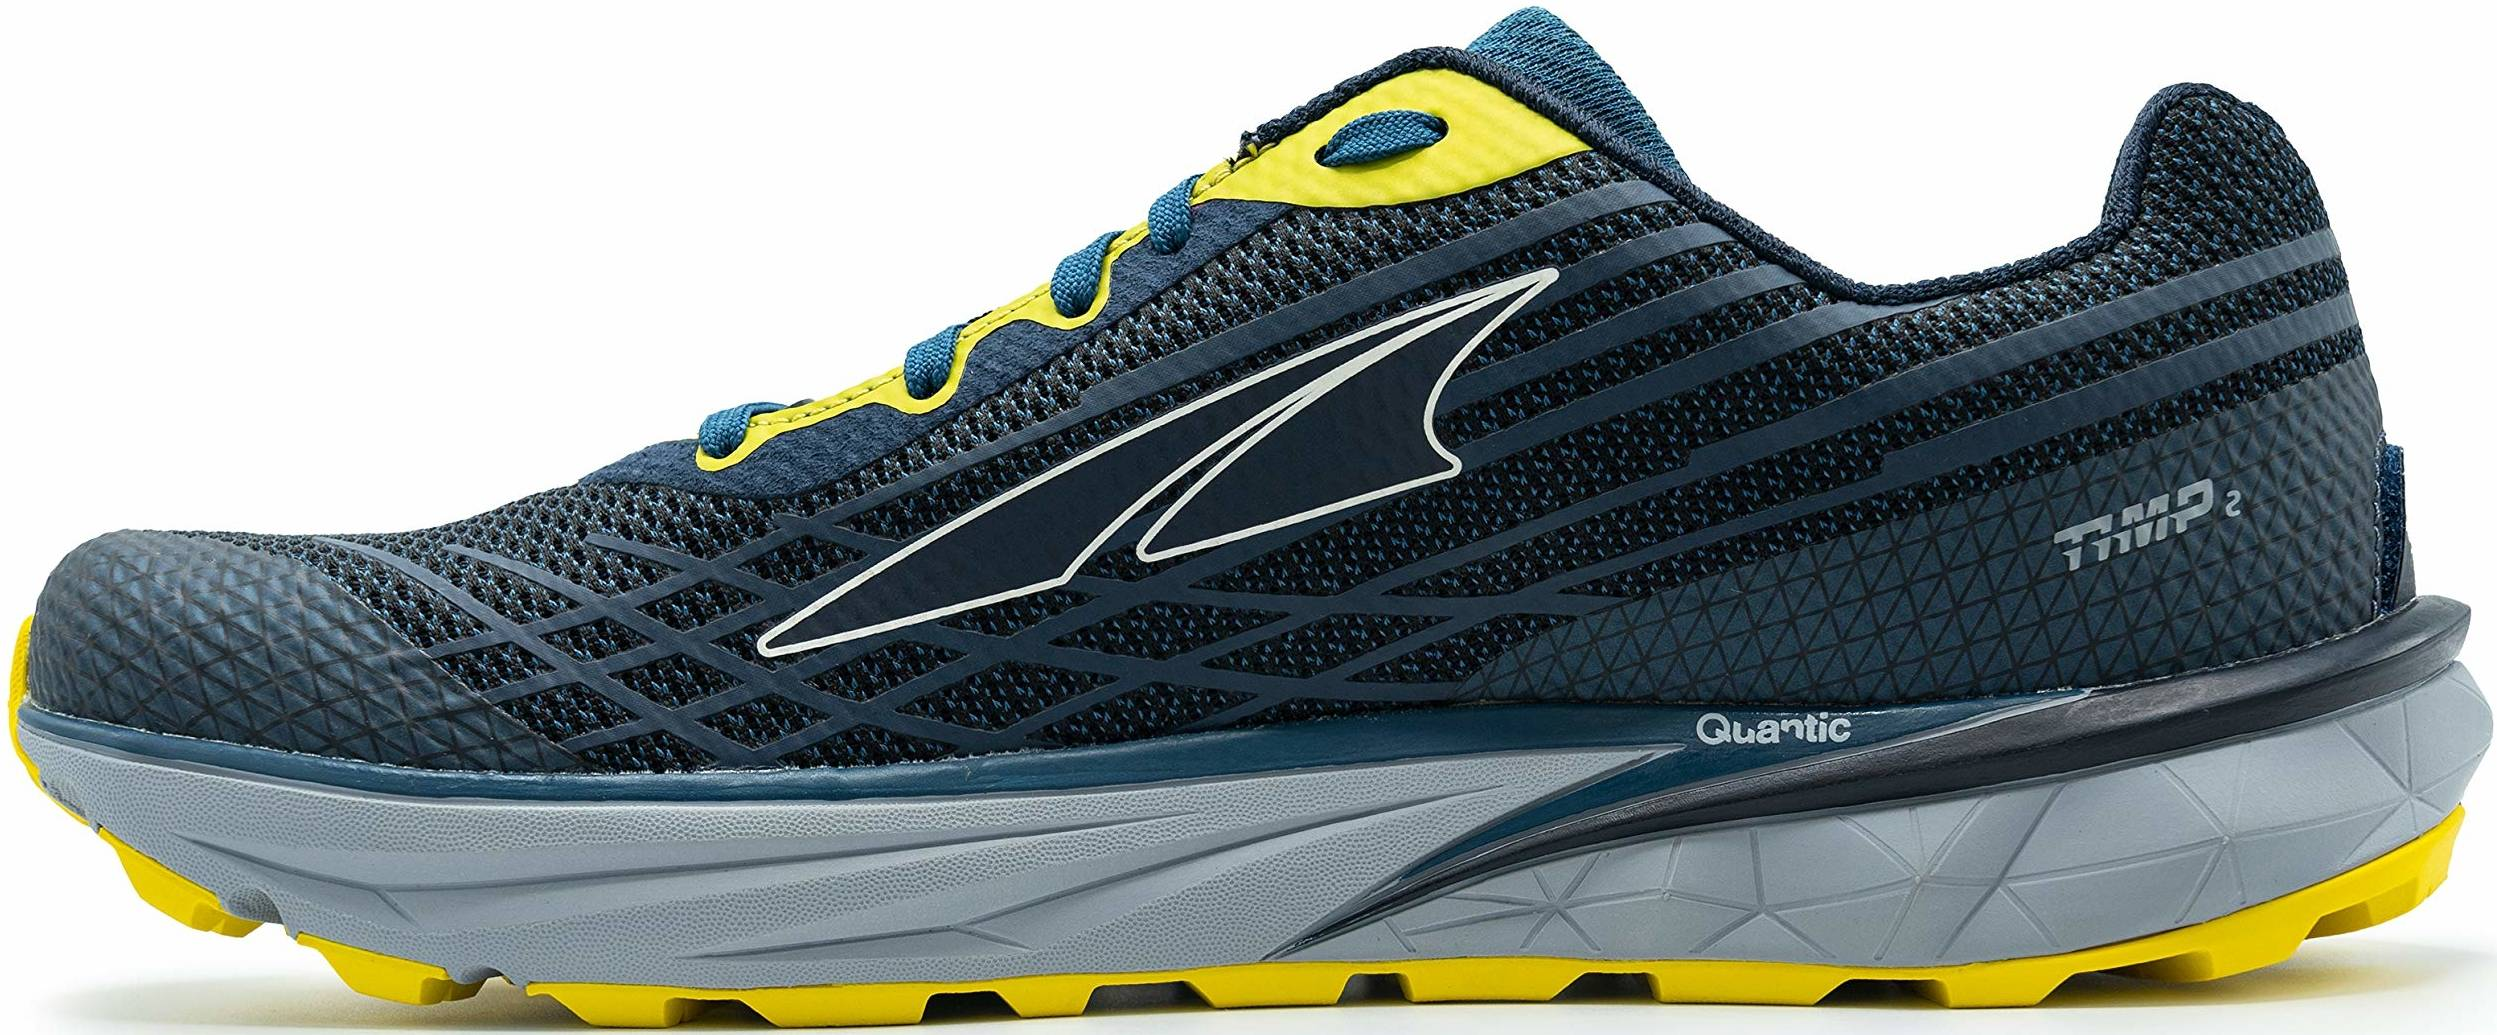 Save 63% on Altra Running Shoes (63